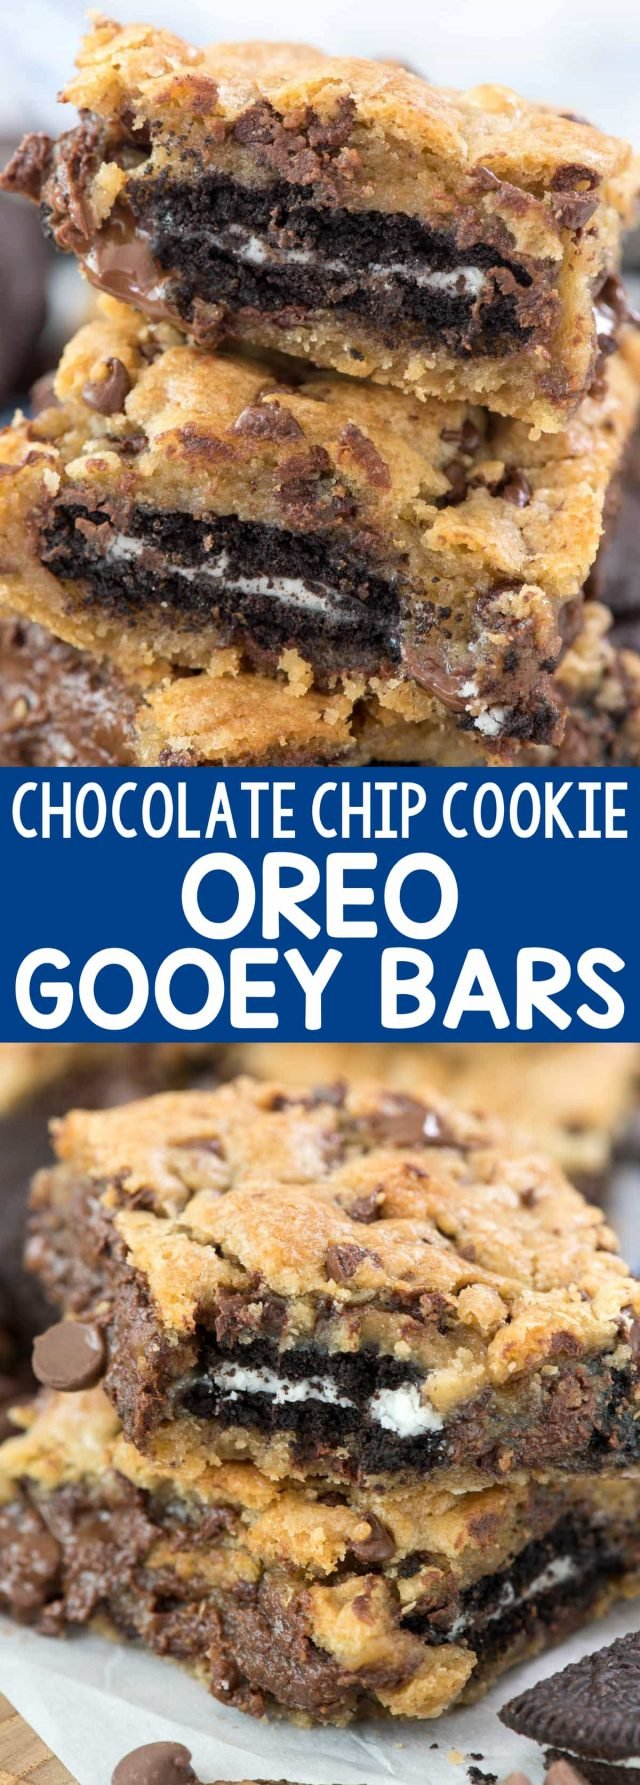 Oreo Stuffed Chocolate Chip Cookie Gooey Bars - my FAVORITE Chocolate Chip Cookie Gooey Bars STUFFED WITH OREOS! These are the BEST cookie bar ever.